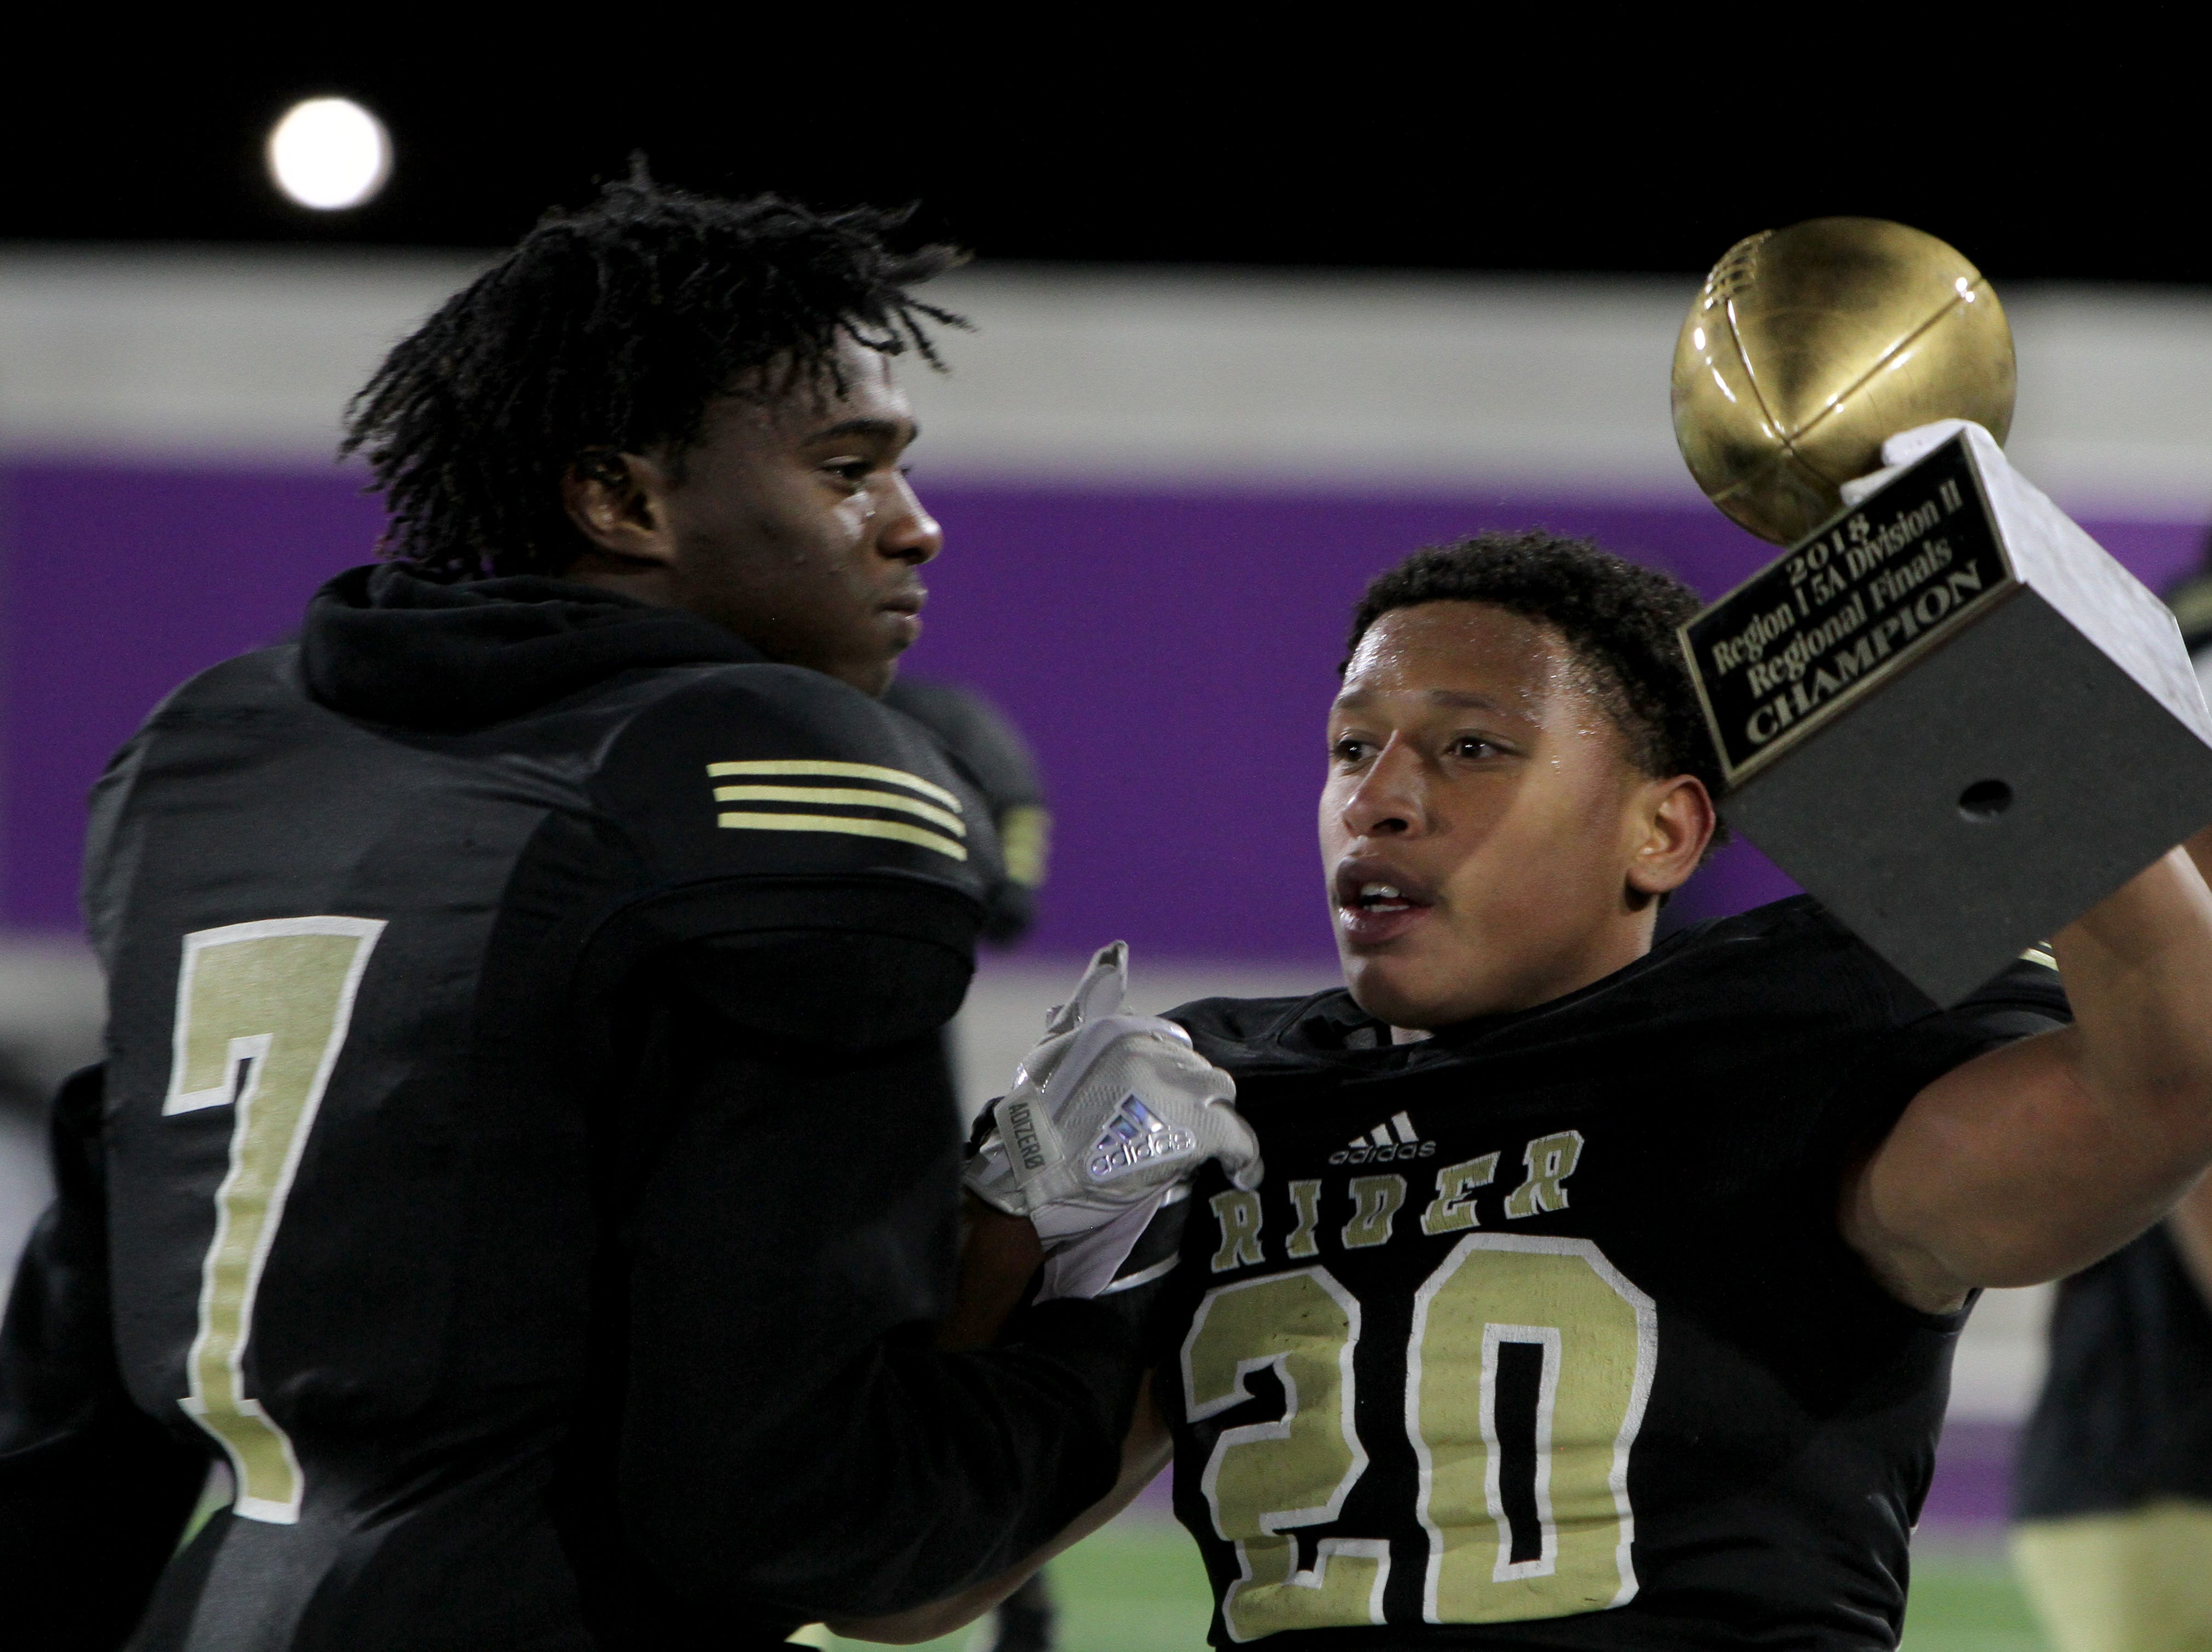 Rider's Tre Byrd celebrates the Raiders win over Lubbock Cooper with Patrick Cyrus (7) Thursday, Dec. 6, 2018, at Wildcats Stadium in Abilene. The Raiders defeated the Pirates 38-35.